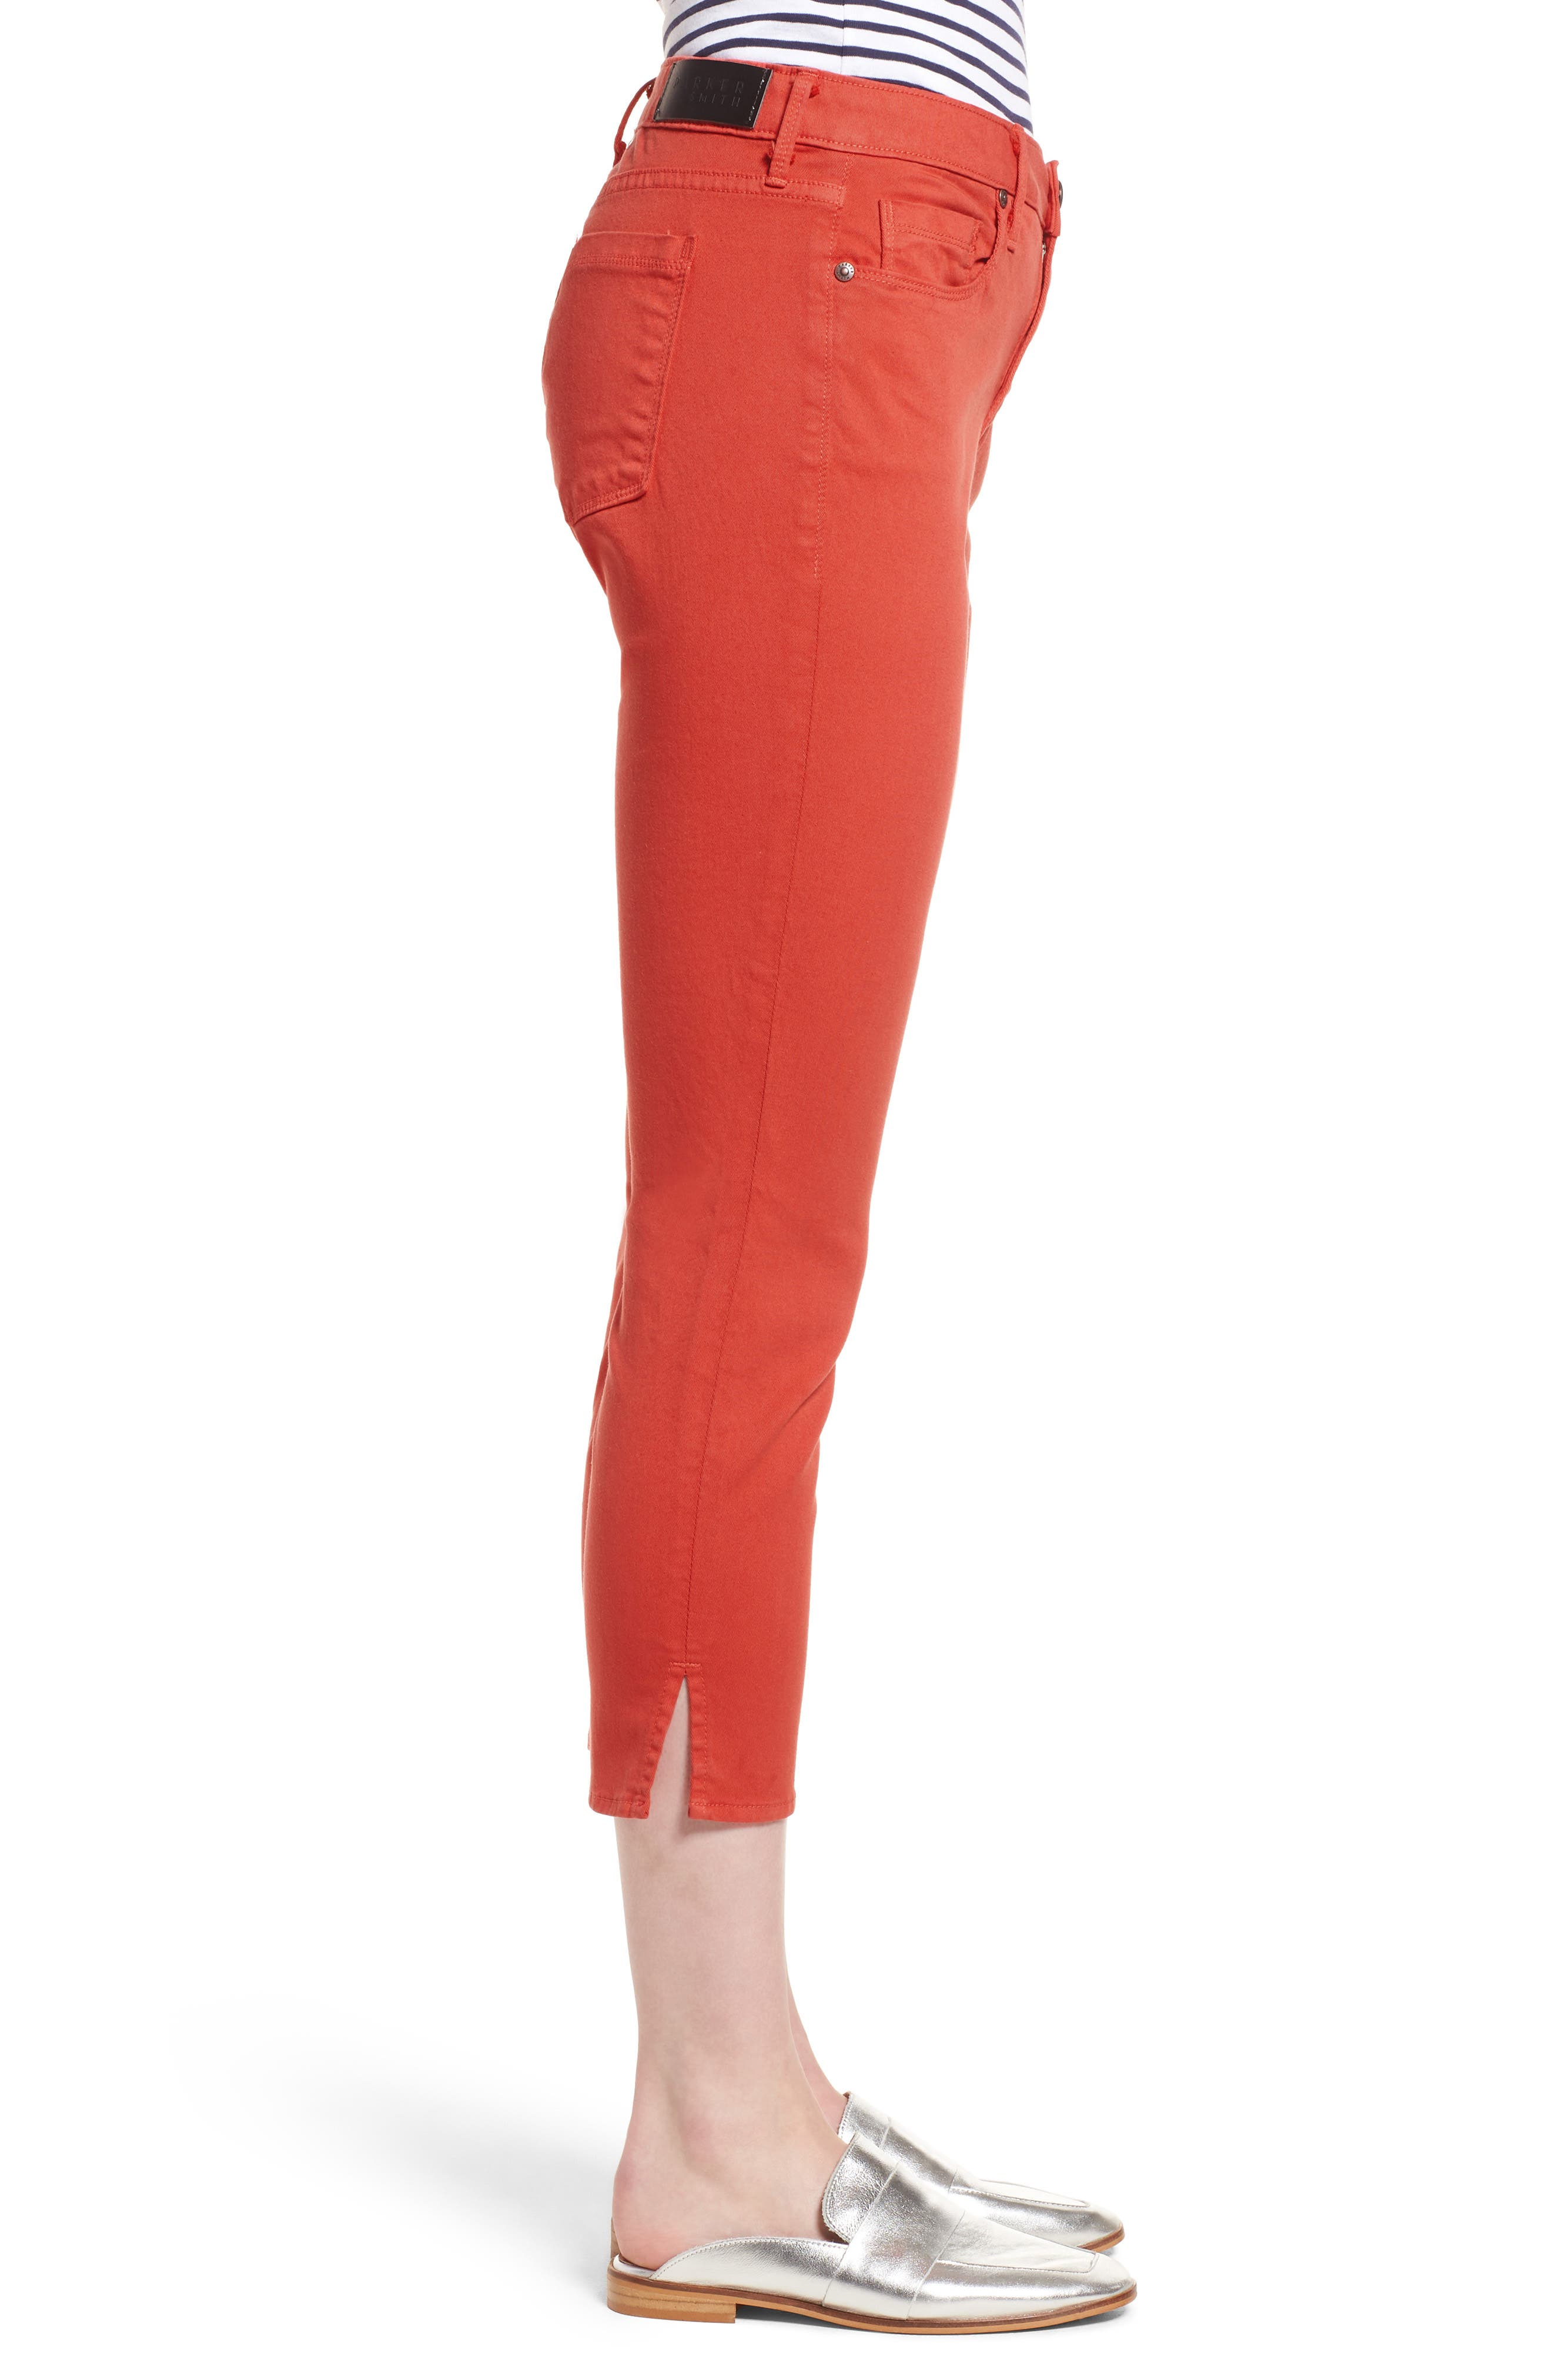 Pedal Pusher Crop Jeans,                             Alternate thumbnail 3, color,